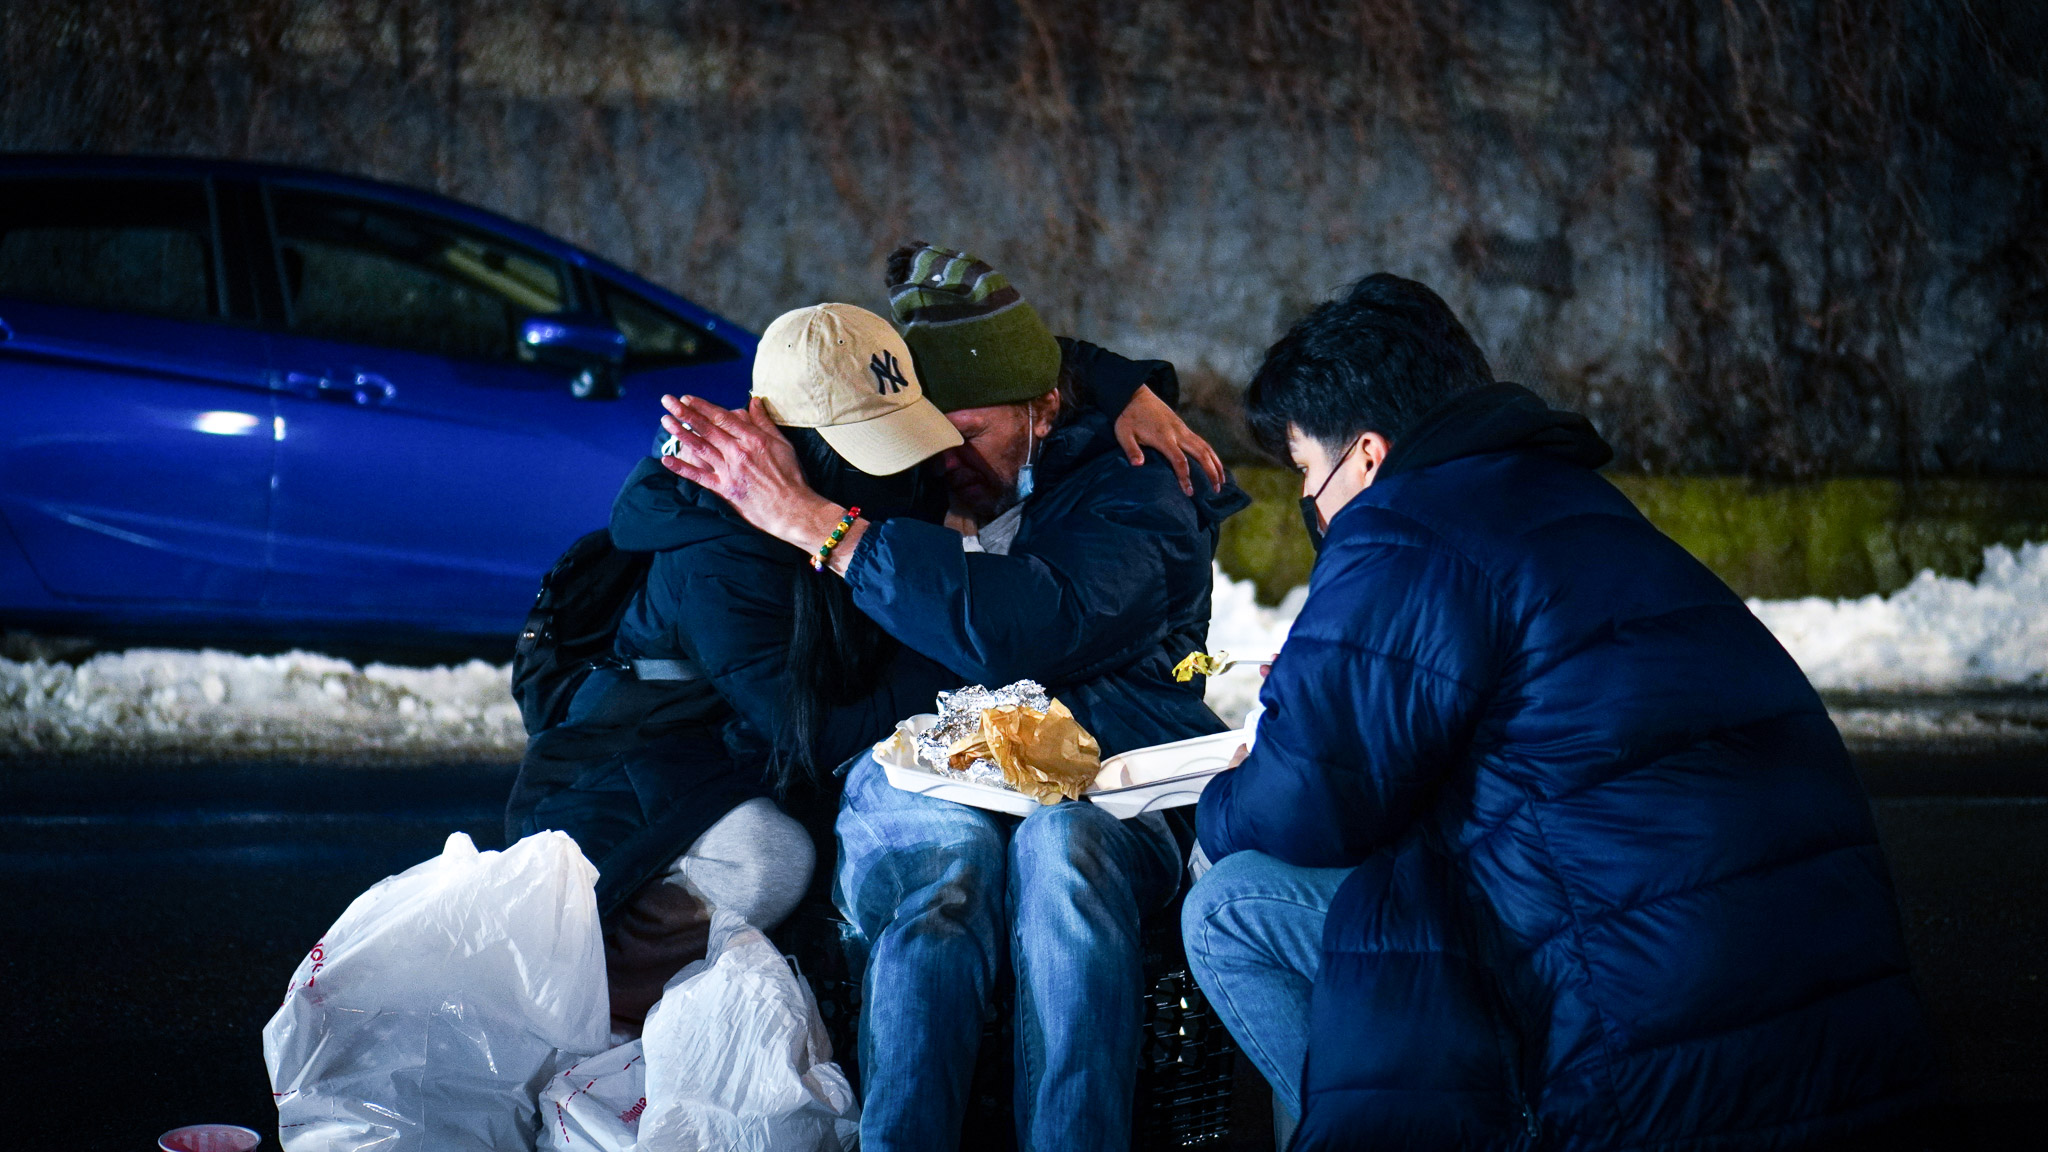 The population of homeless undocumented immigrants have been one of the most impacted by the pandemic